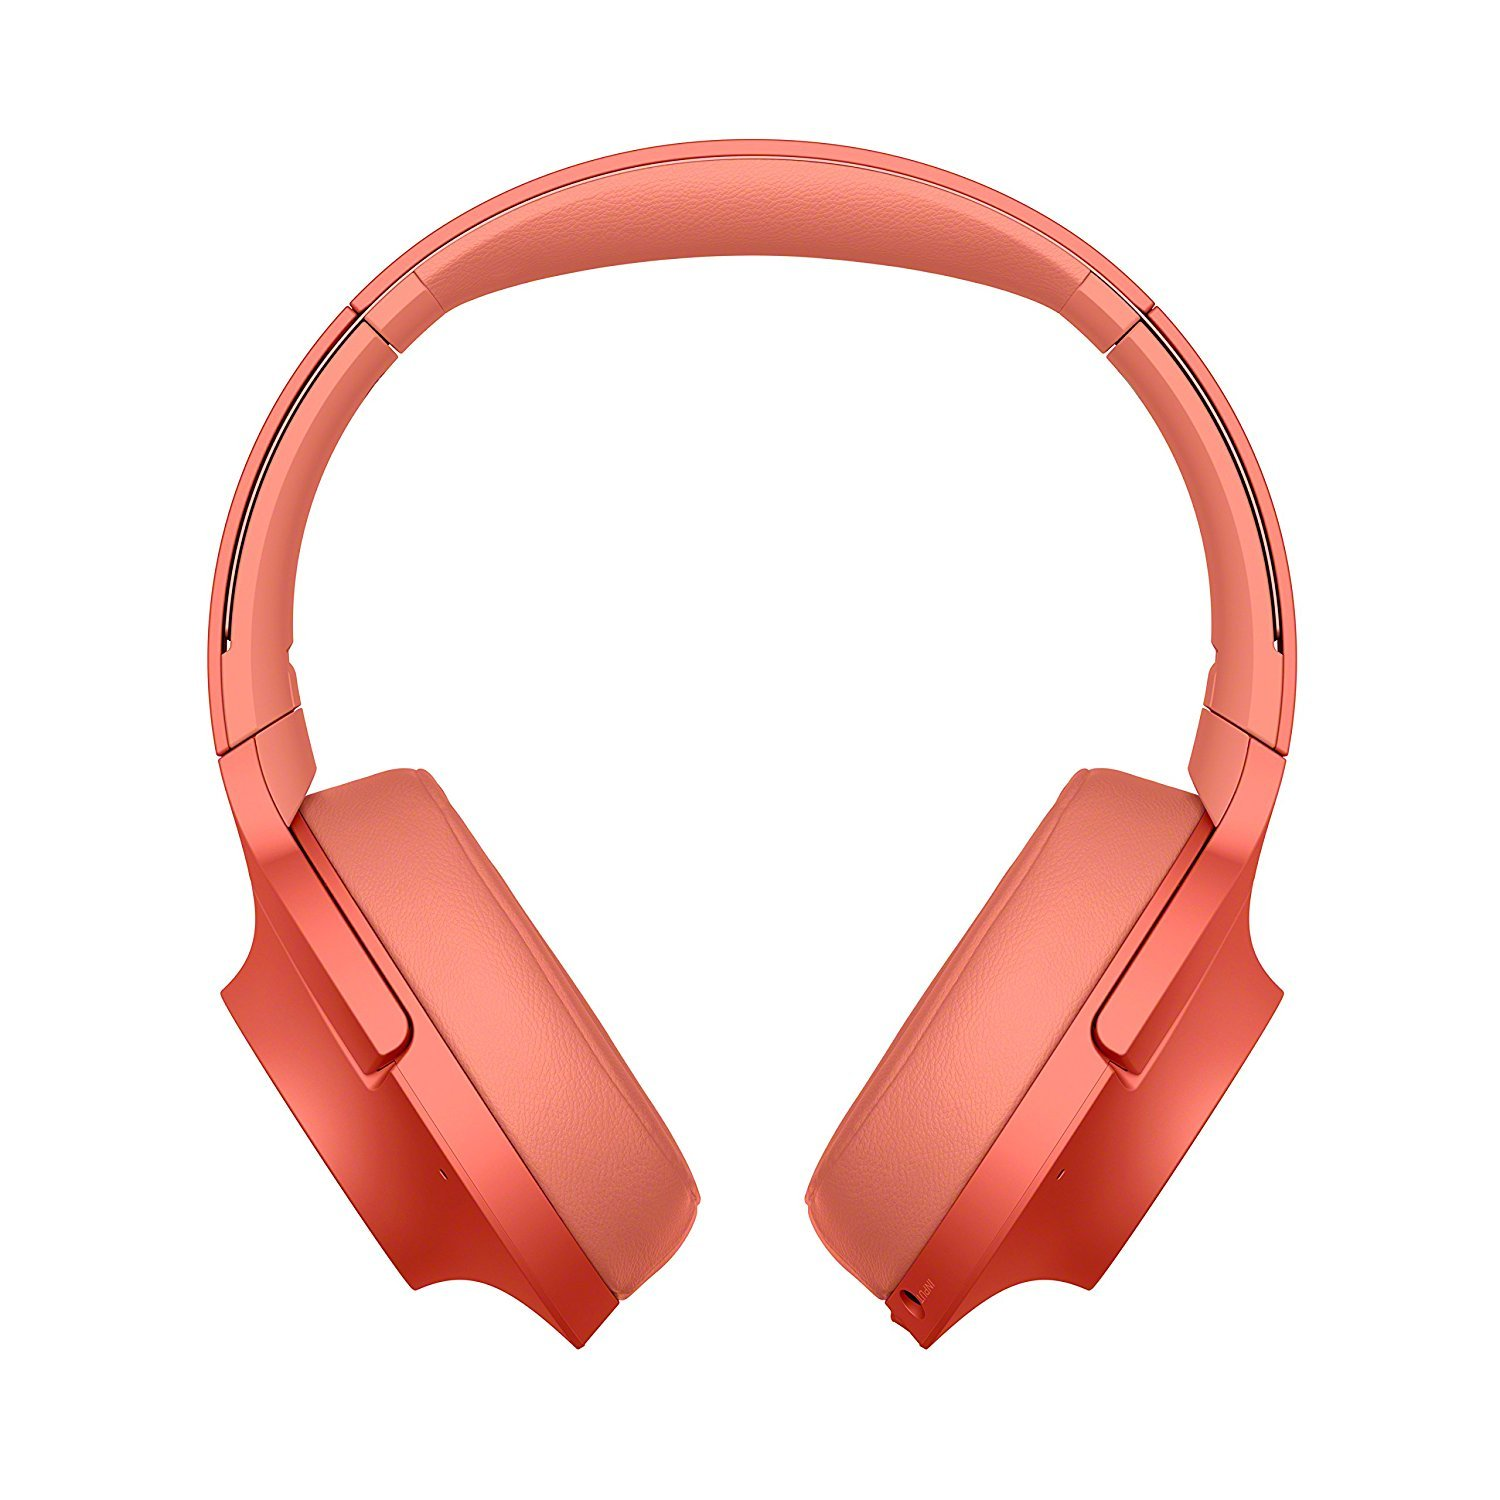 c3da2177769 Sony WH-H900N h.ear Series Wireless Over-Ear Noise Cancelling High  Resolution Headphones (International version/seller warranty) (Red):  Amazon.ca: ...